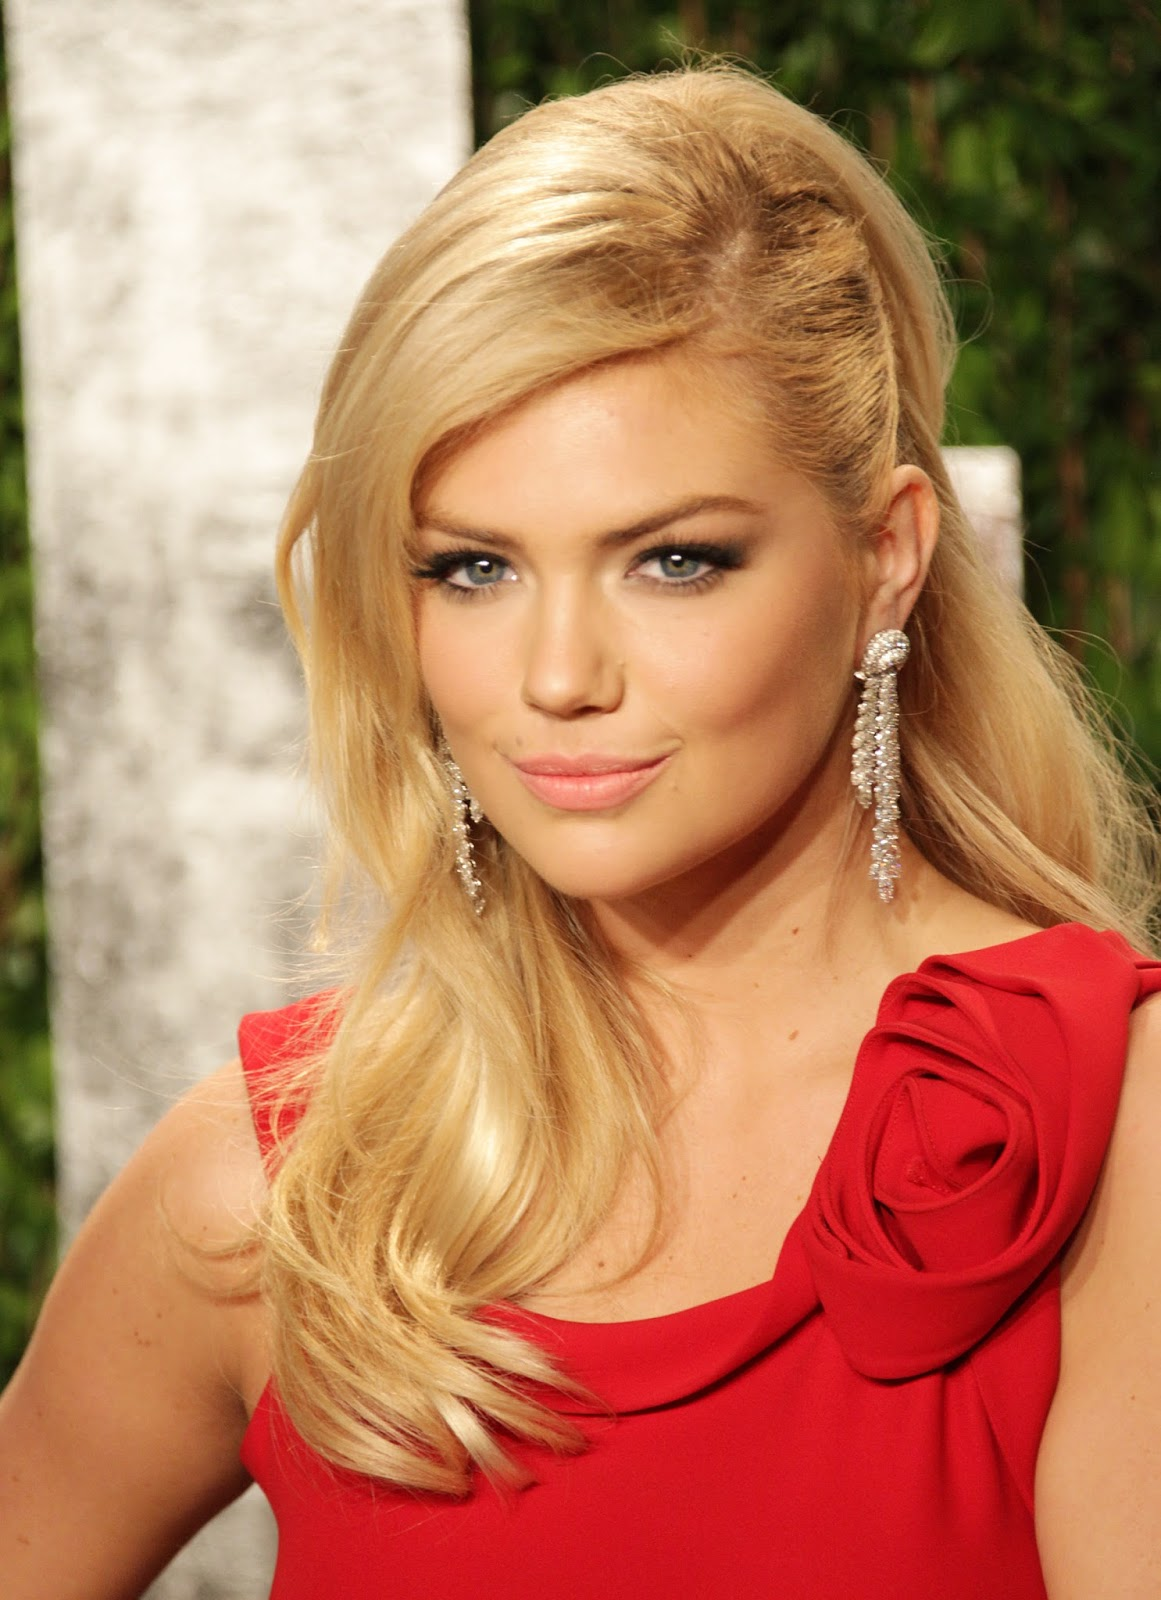 EBL: Kate Upton Vanity Fair Rule 5